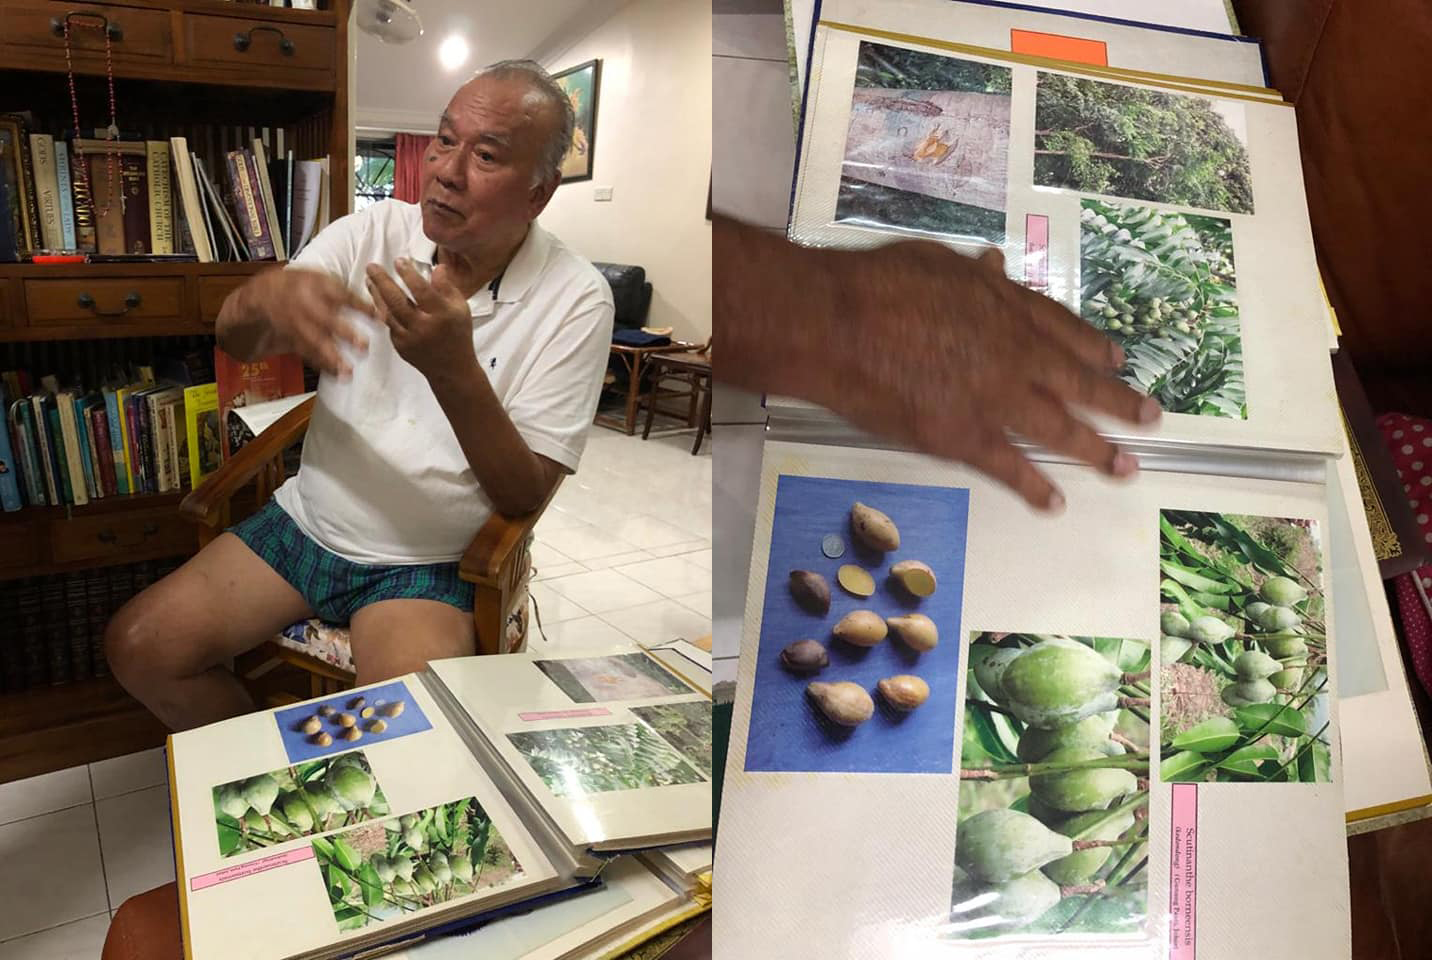 James Kingham showing Ong species of mangosteens and other forest fruits.